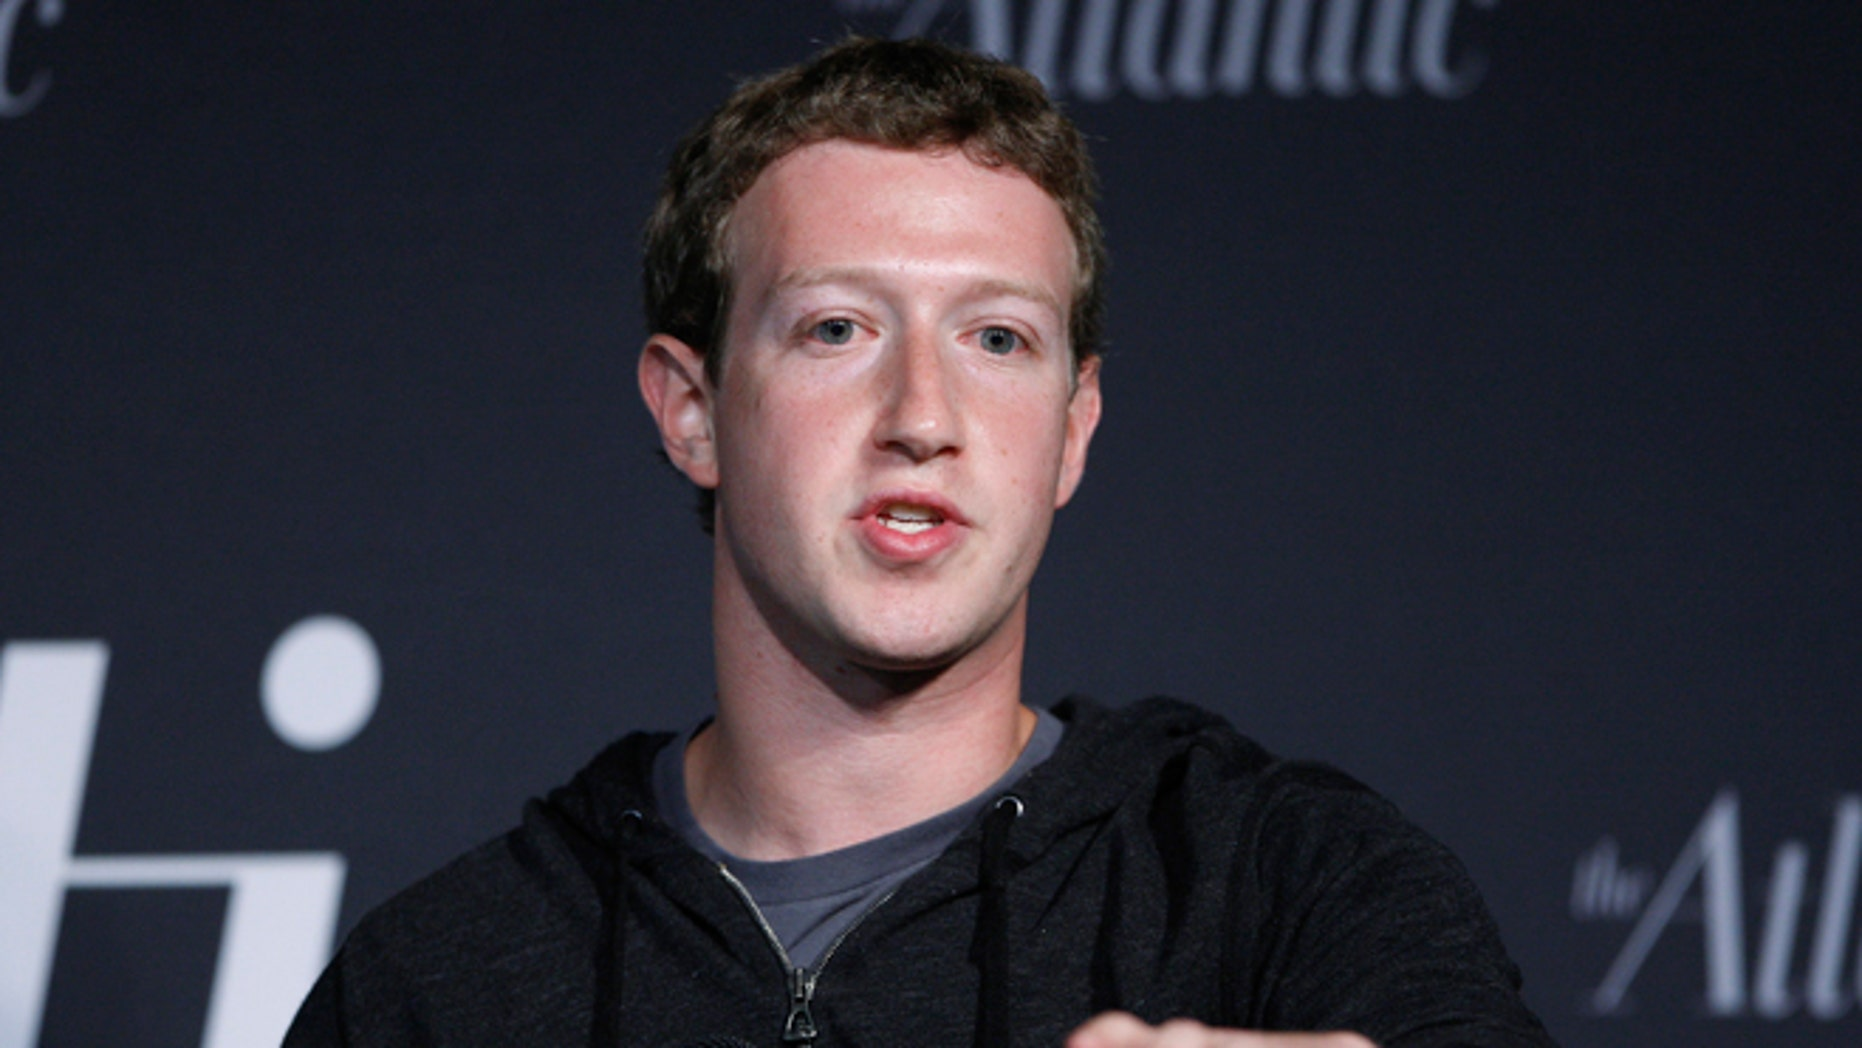 FILE: September 18, 2013: Facebook CEO Mark Zuckerberg delivers remarks in an onstage interview for the Atlantic Magazine in Washington, D.C.